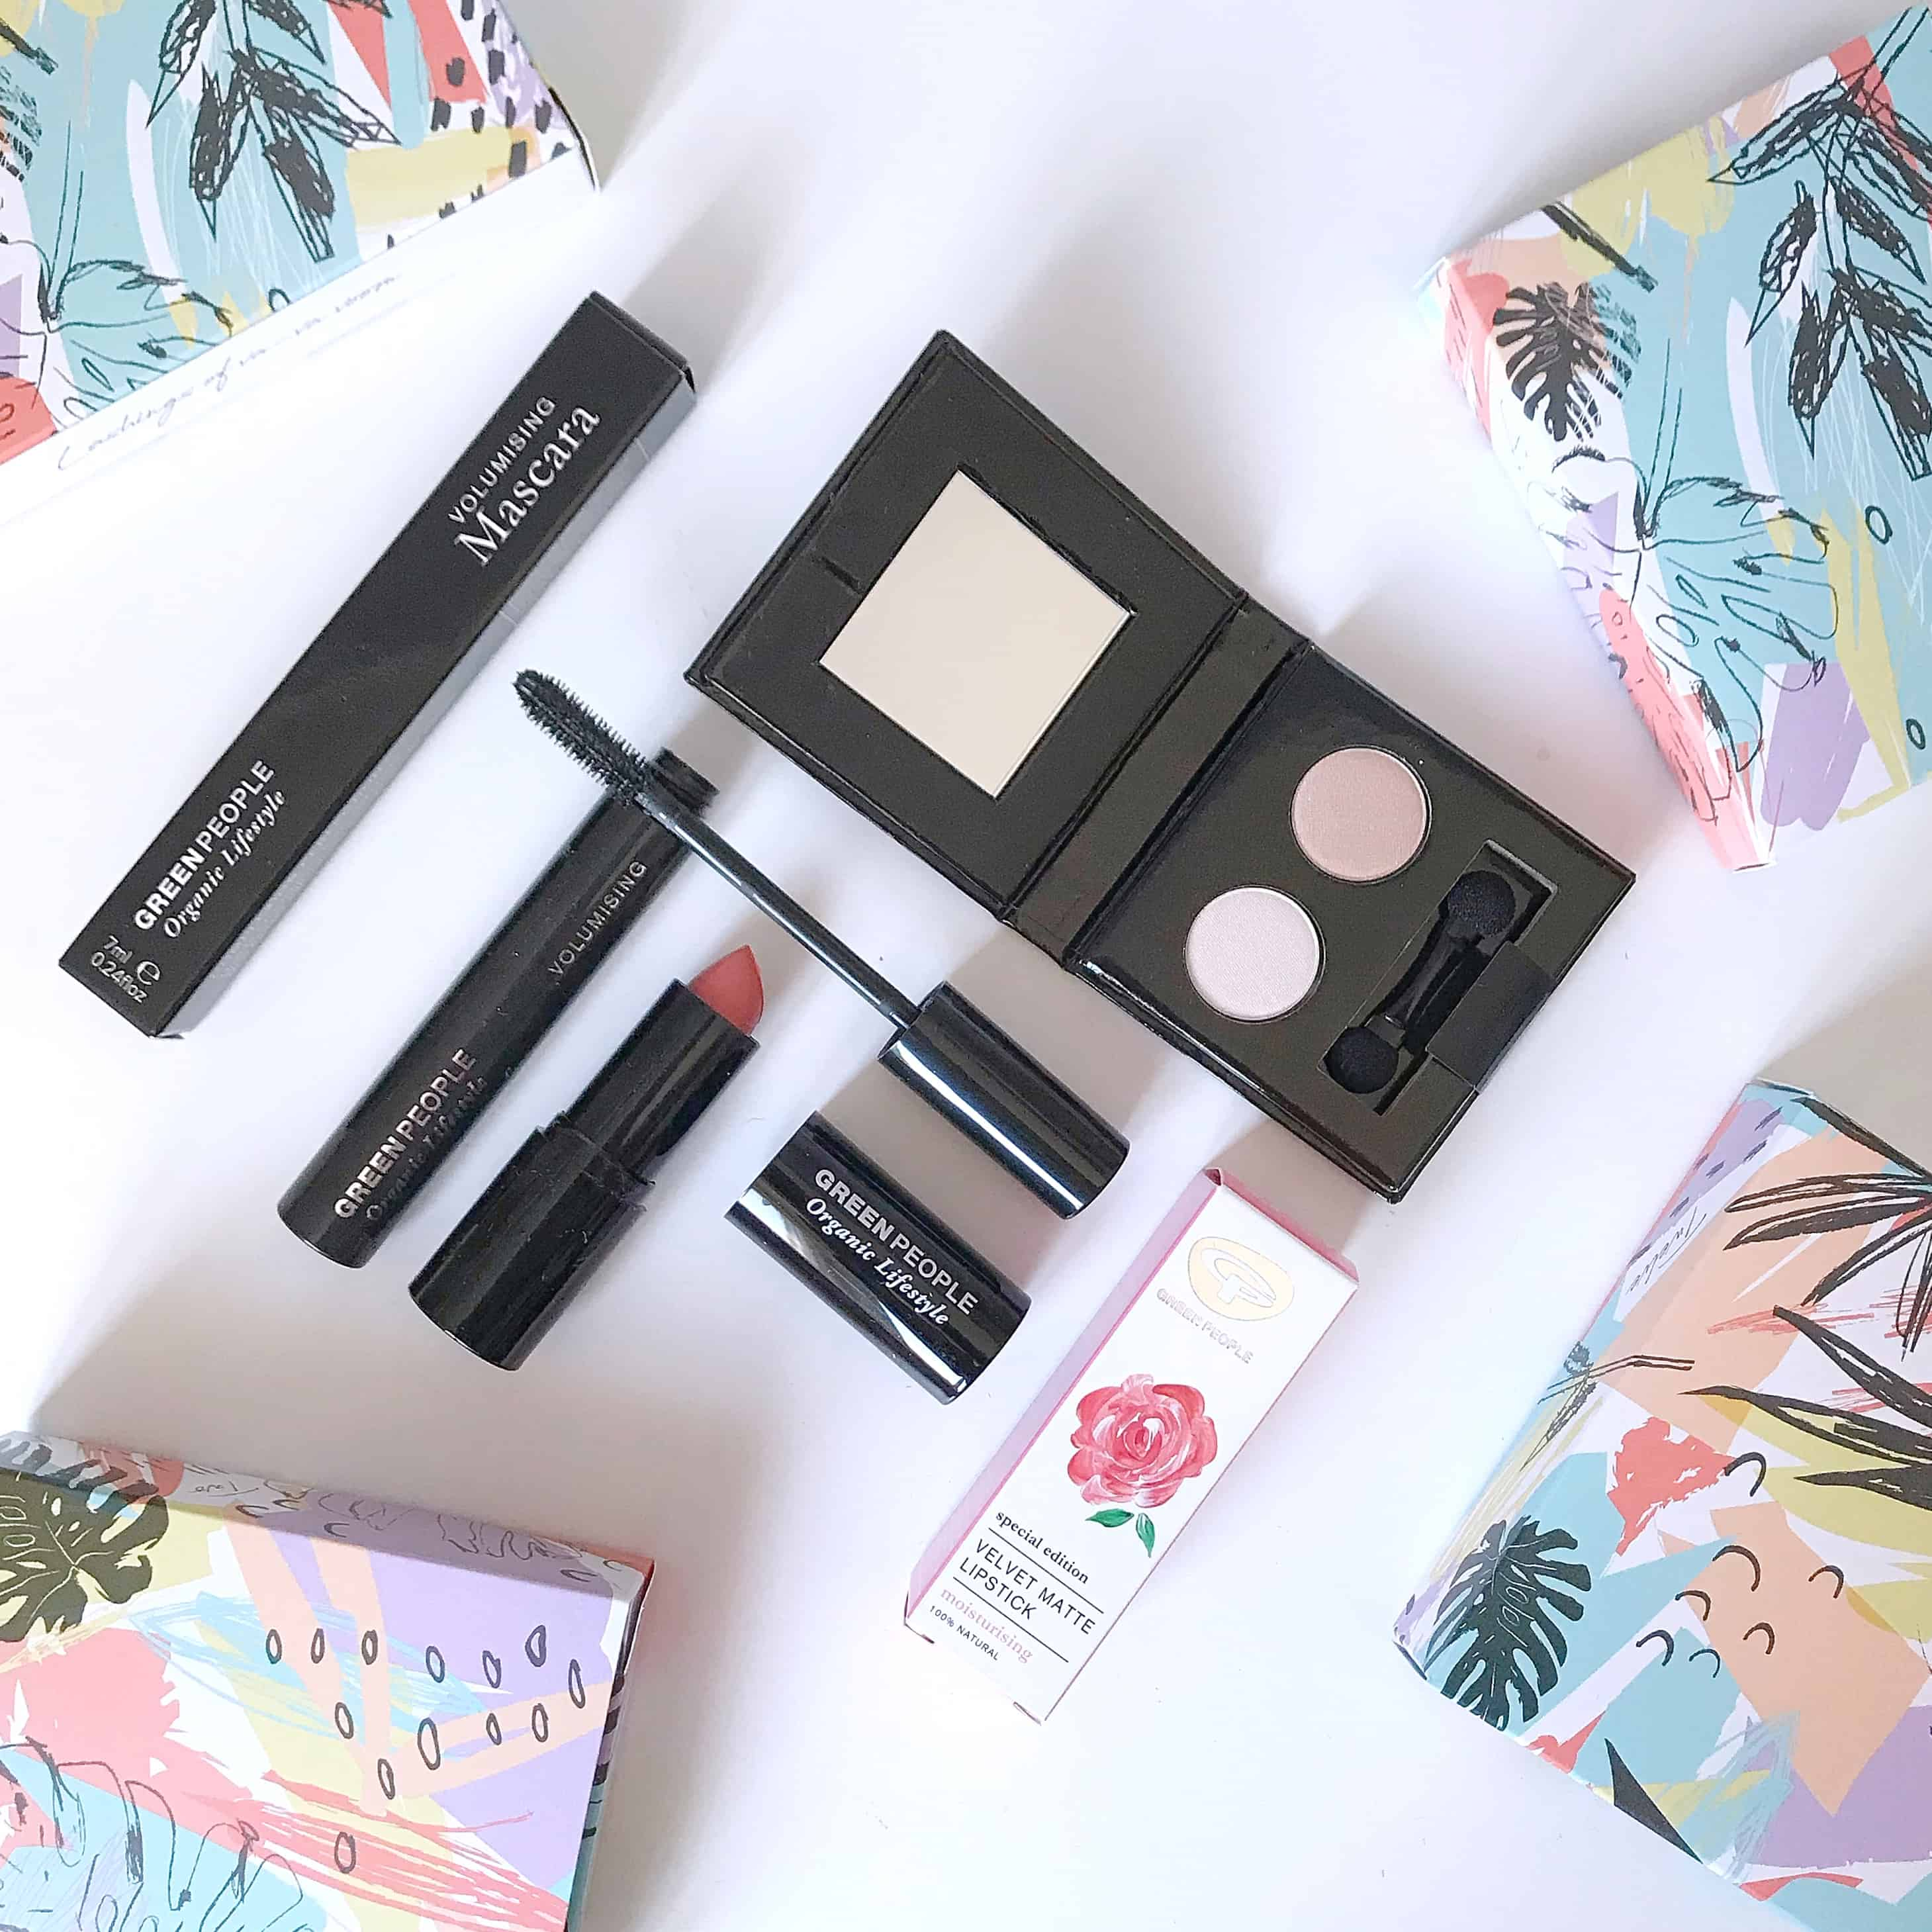 Organic make-up from Green People in their Green Regime Beauty Advent Calendar